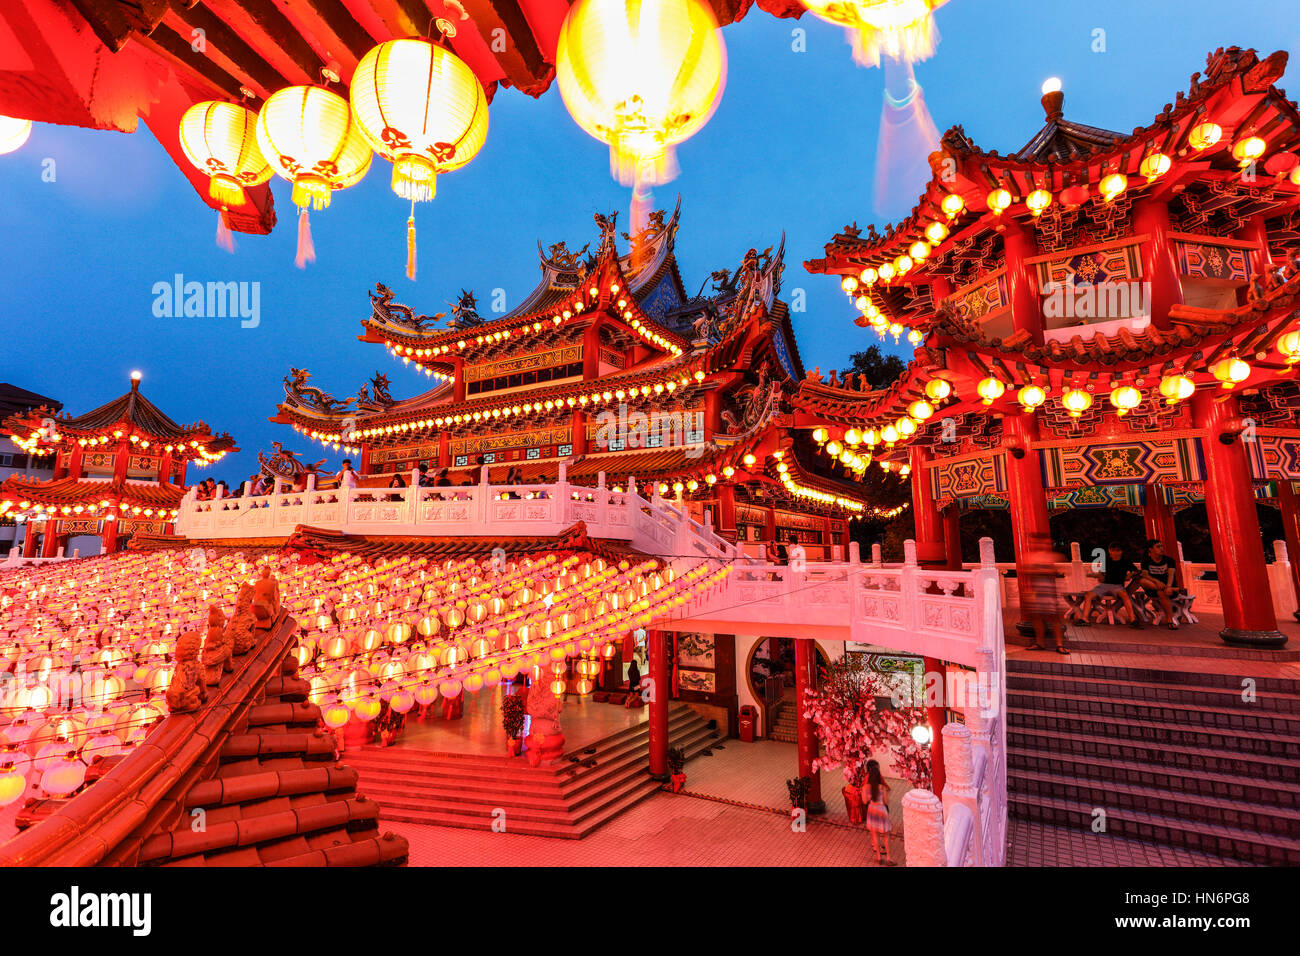 The Red Lanterns of Thean Hou Temple, Malaysia, During the Lunar Chinese New Year. - Stock Image